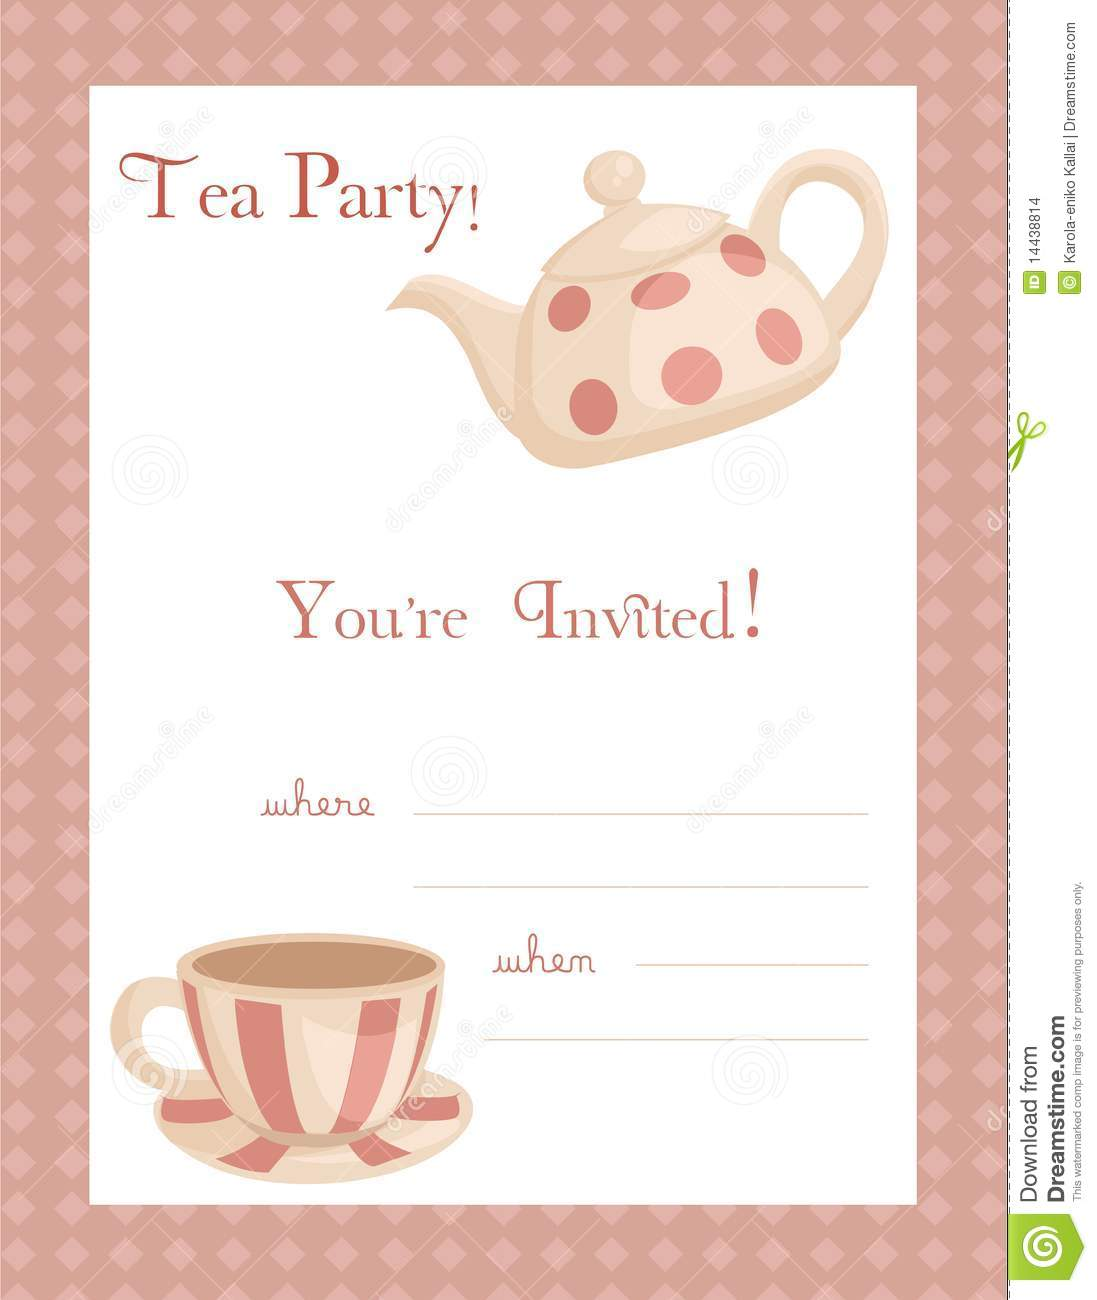 Invitation Creator Free Printable as awesome invitation example